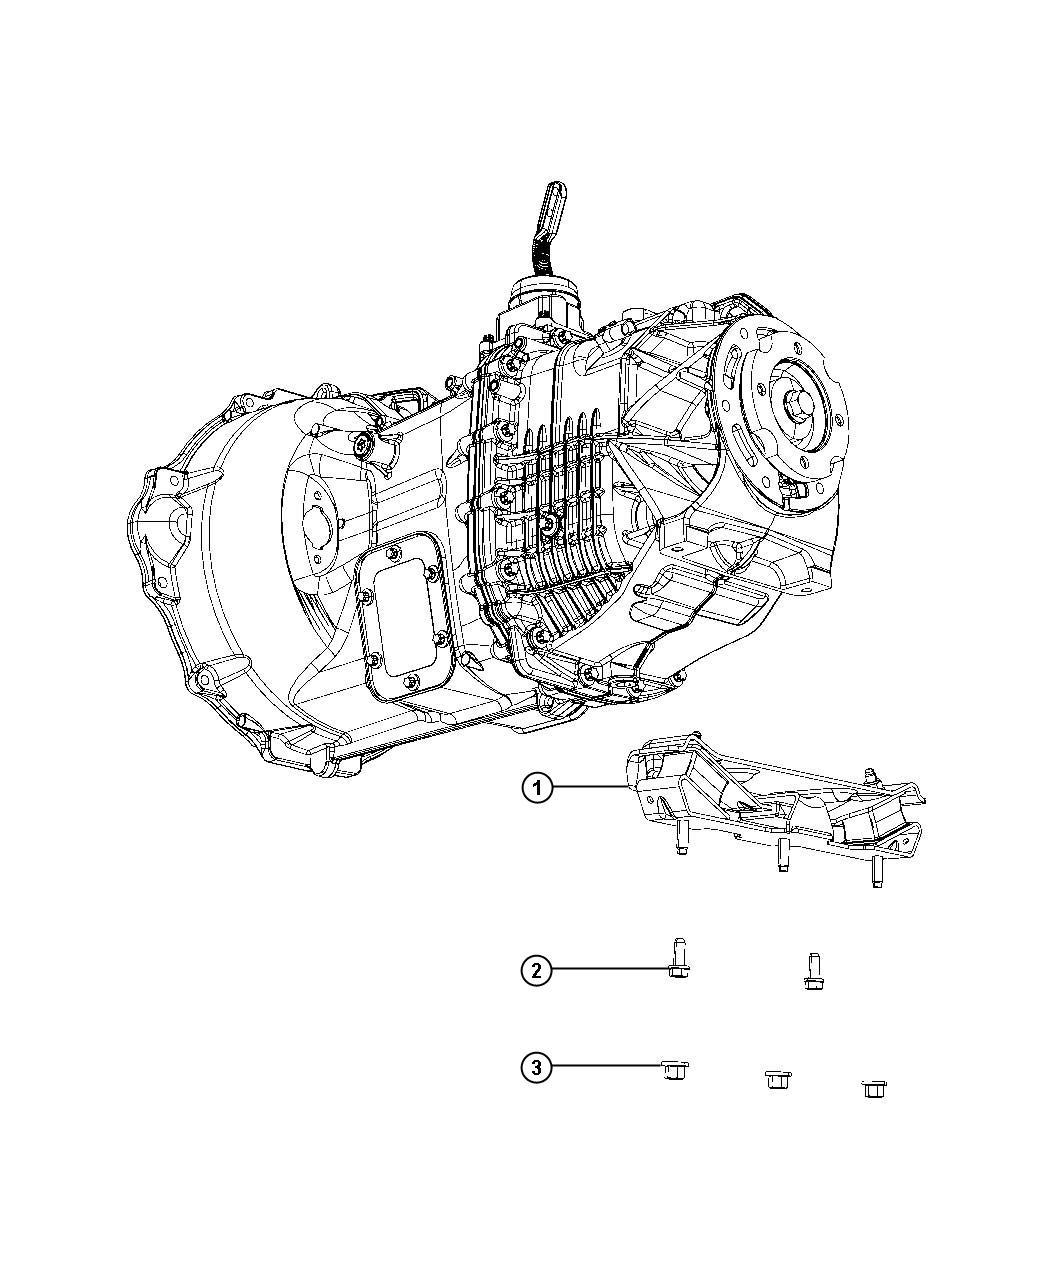 2015 ram 5500 bracket and insulator  two wheel drive  transmission support